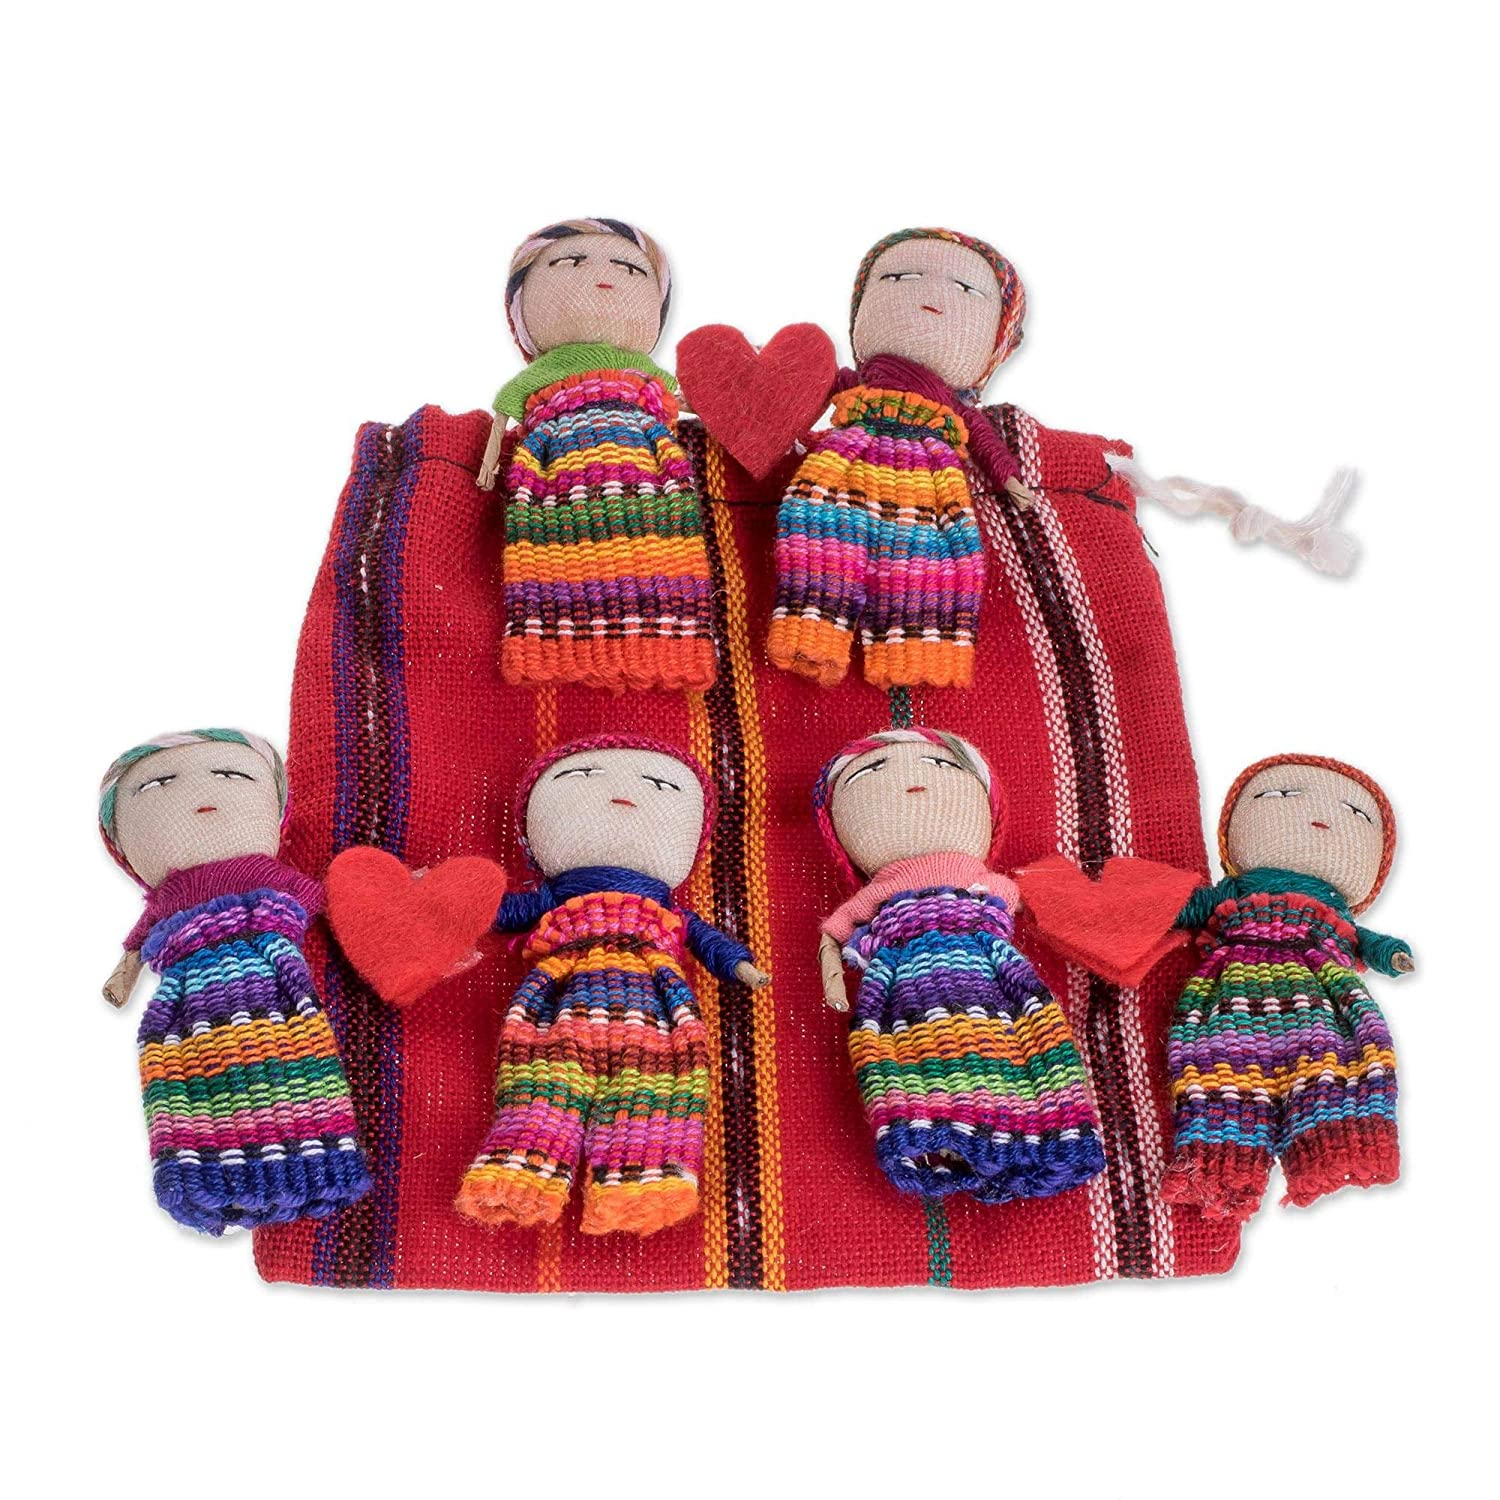 Set of 2 Pairs 2.5 NOVICA Valentines Theme Handmade Worry Doll Pairs from Guatemala with Hearts and Cotton Storage Pouch Love and Hope